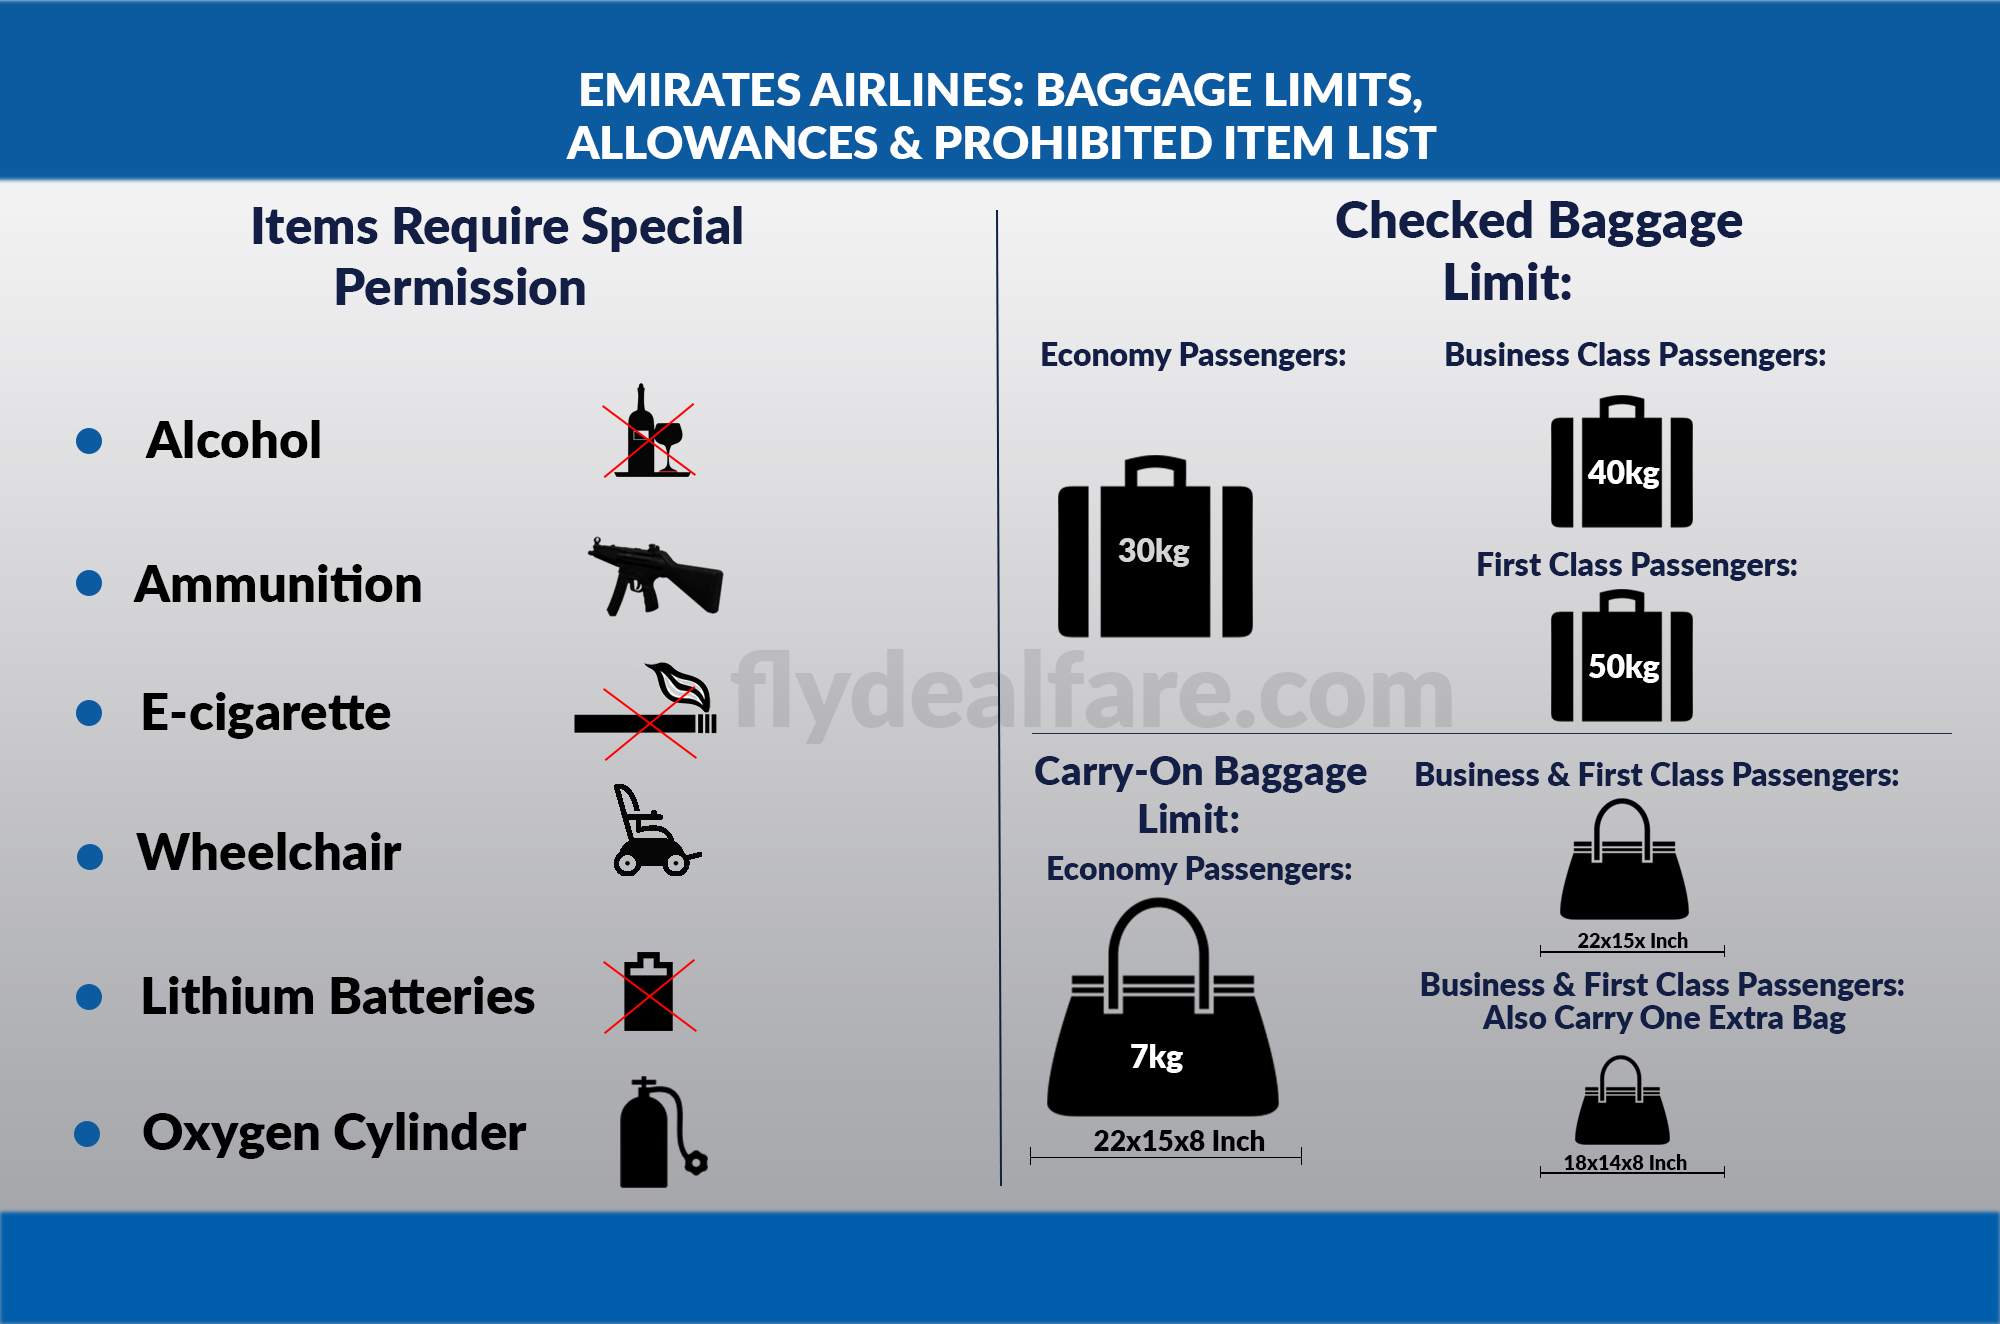 Know More About The Baggage Policy Of Emirates